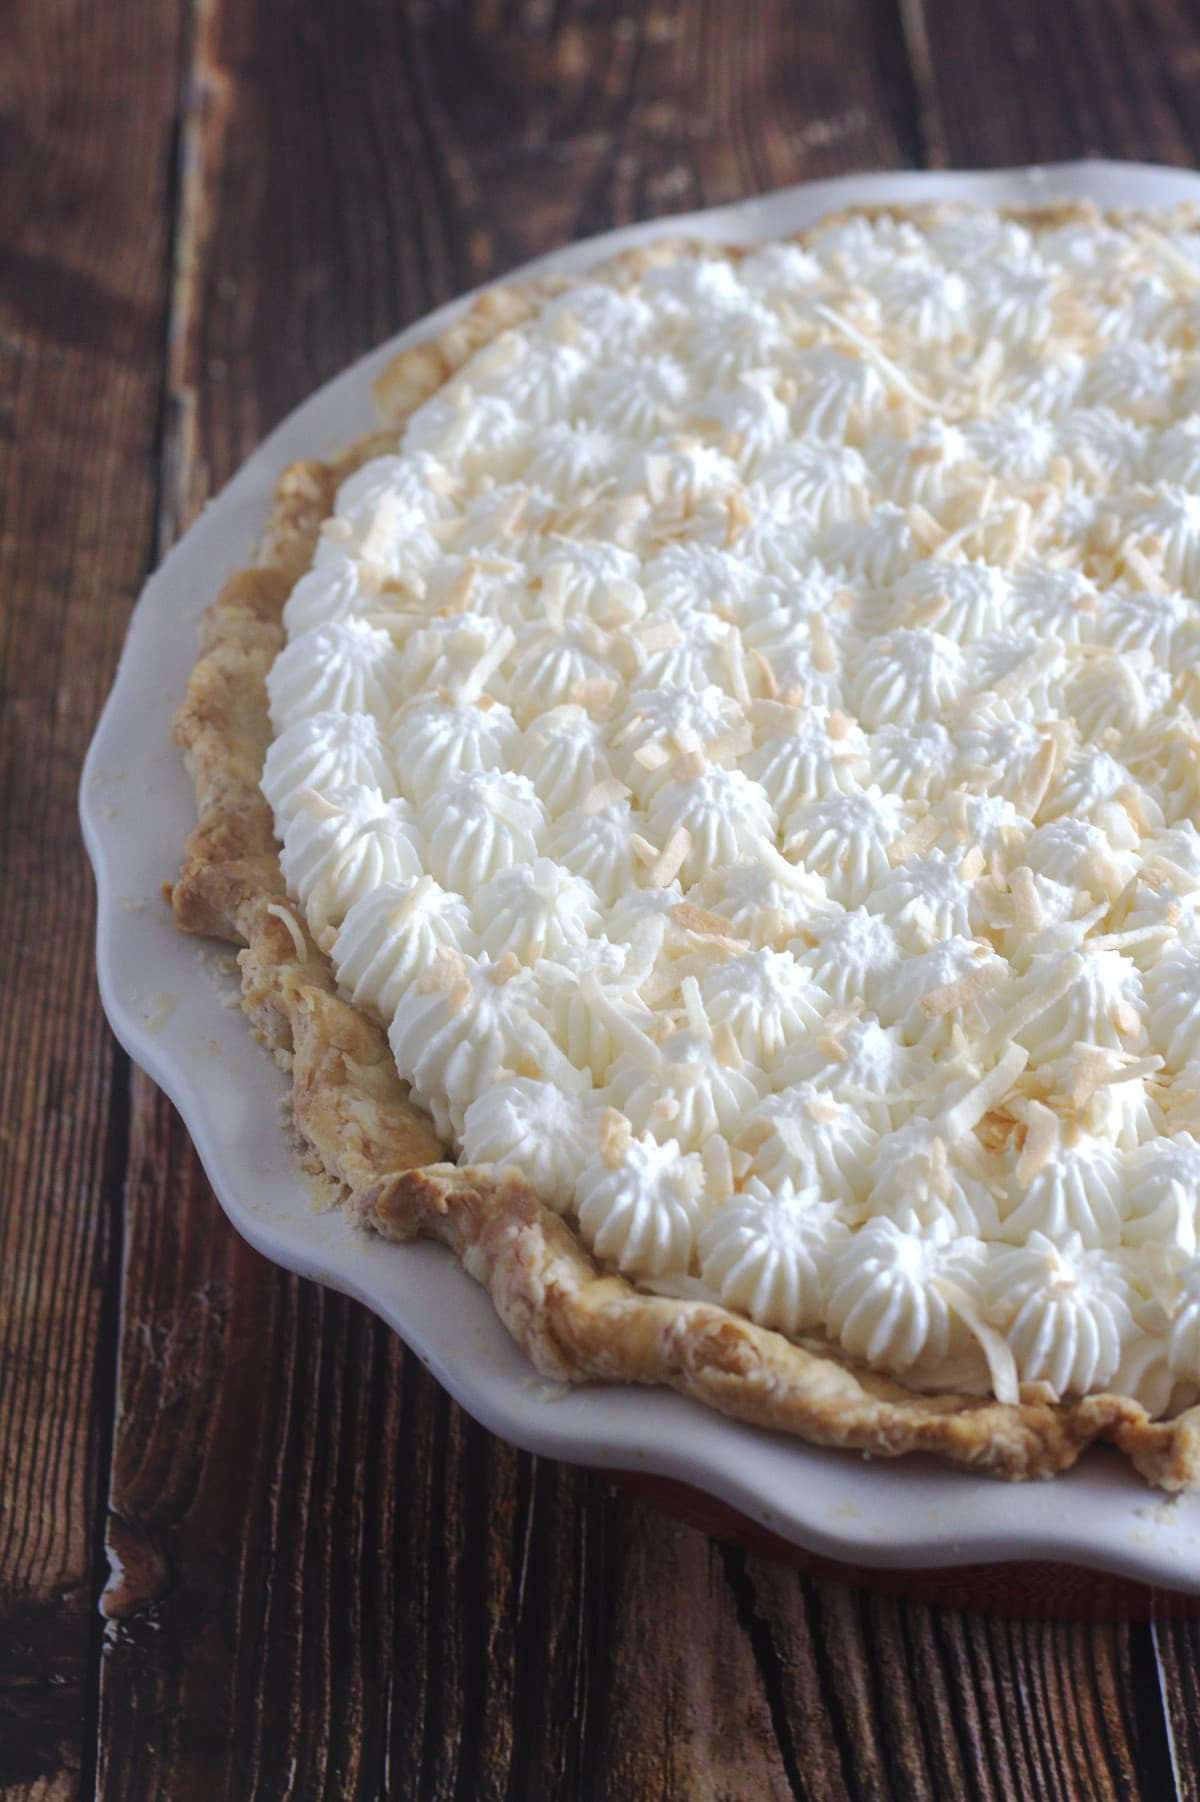 A partial view of a pie.